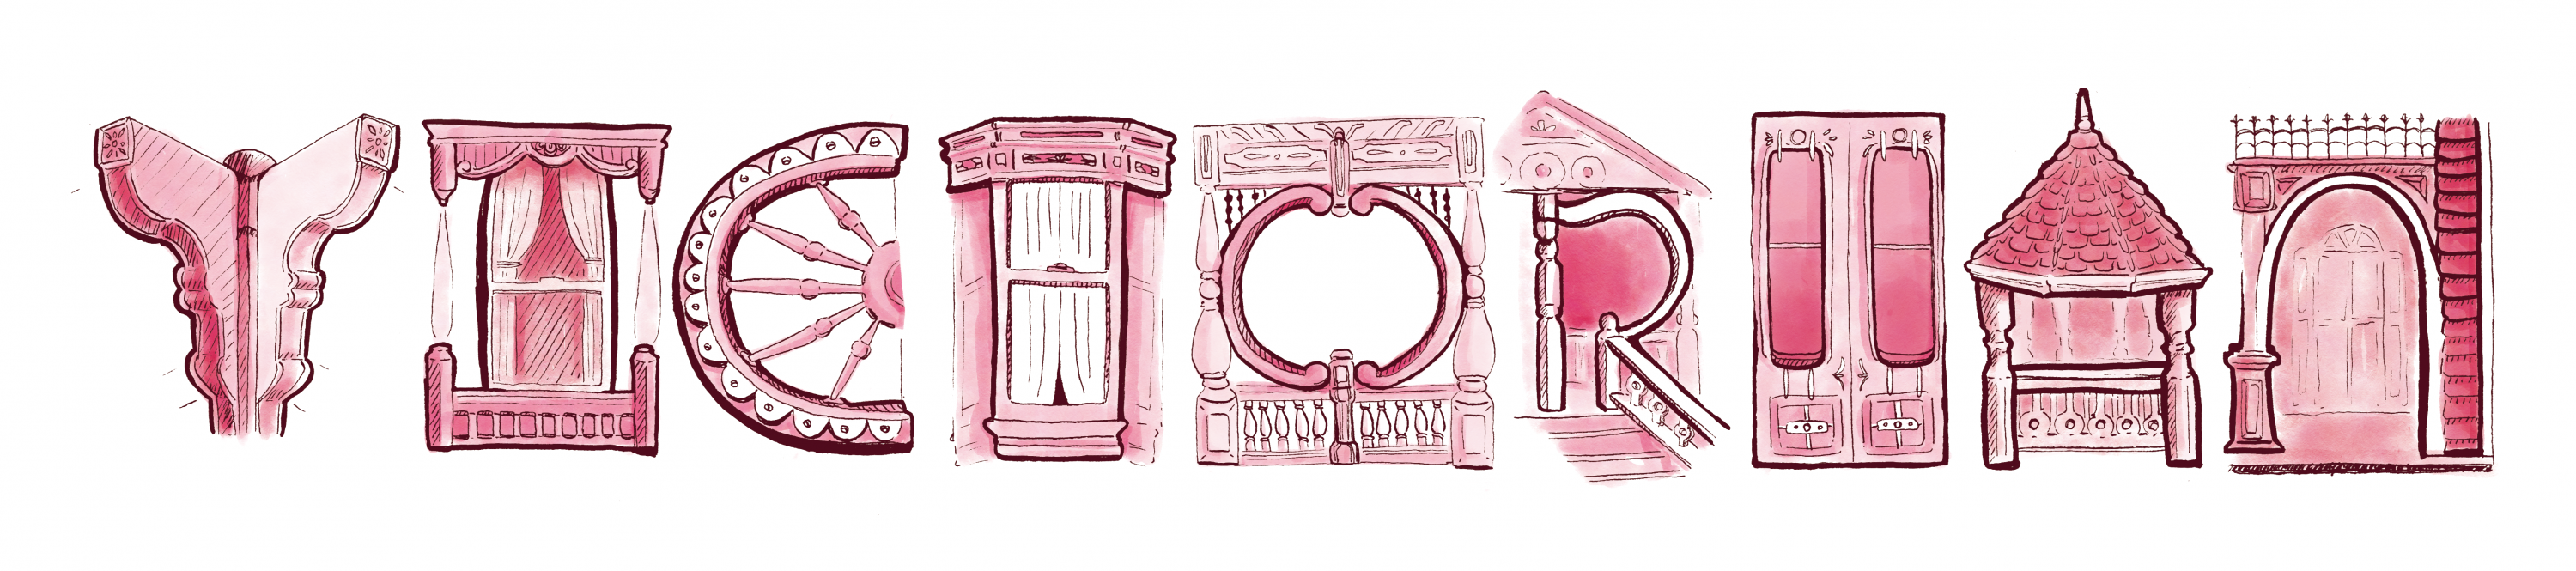 "The word ""Victorian"" made out of several architectural details of Victorian 'Painted Lady' style houses. Colored in a soft pink with black linework."